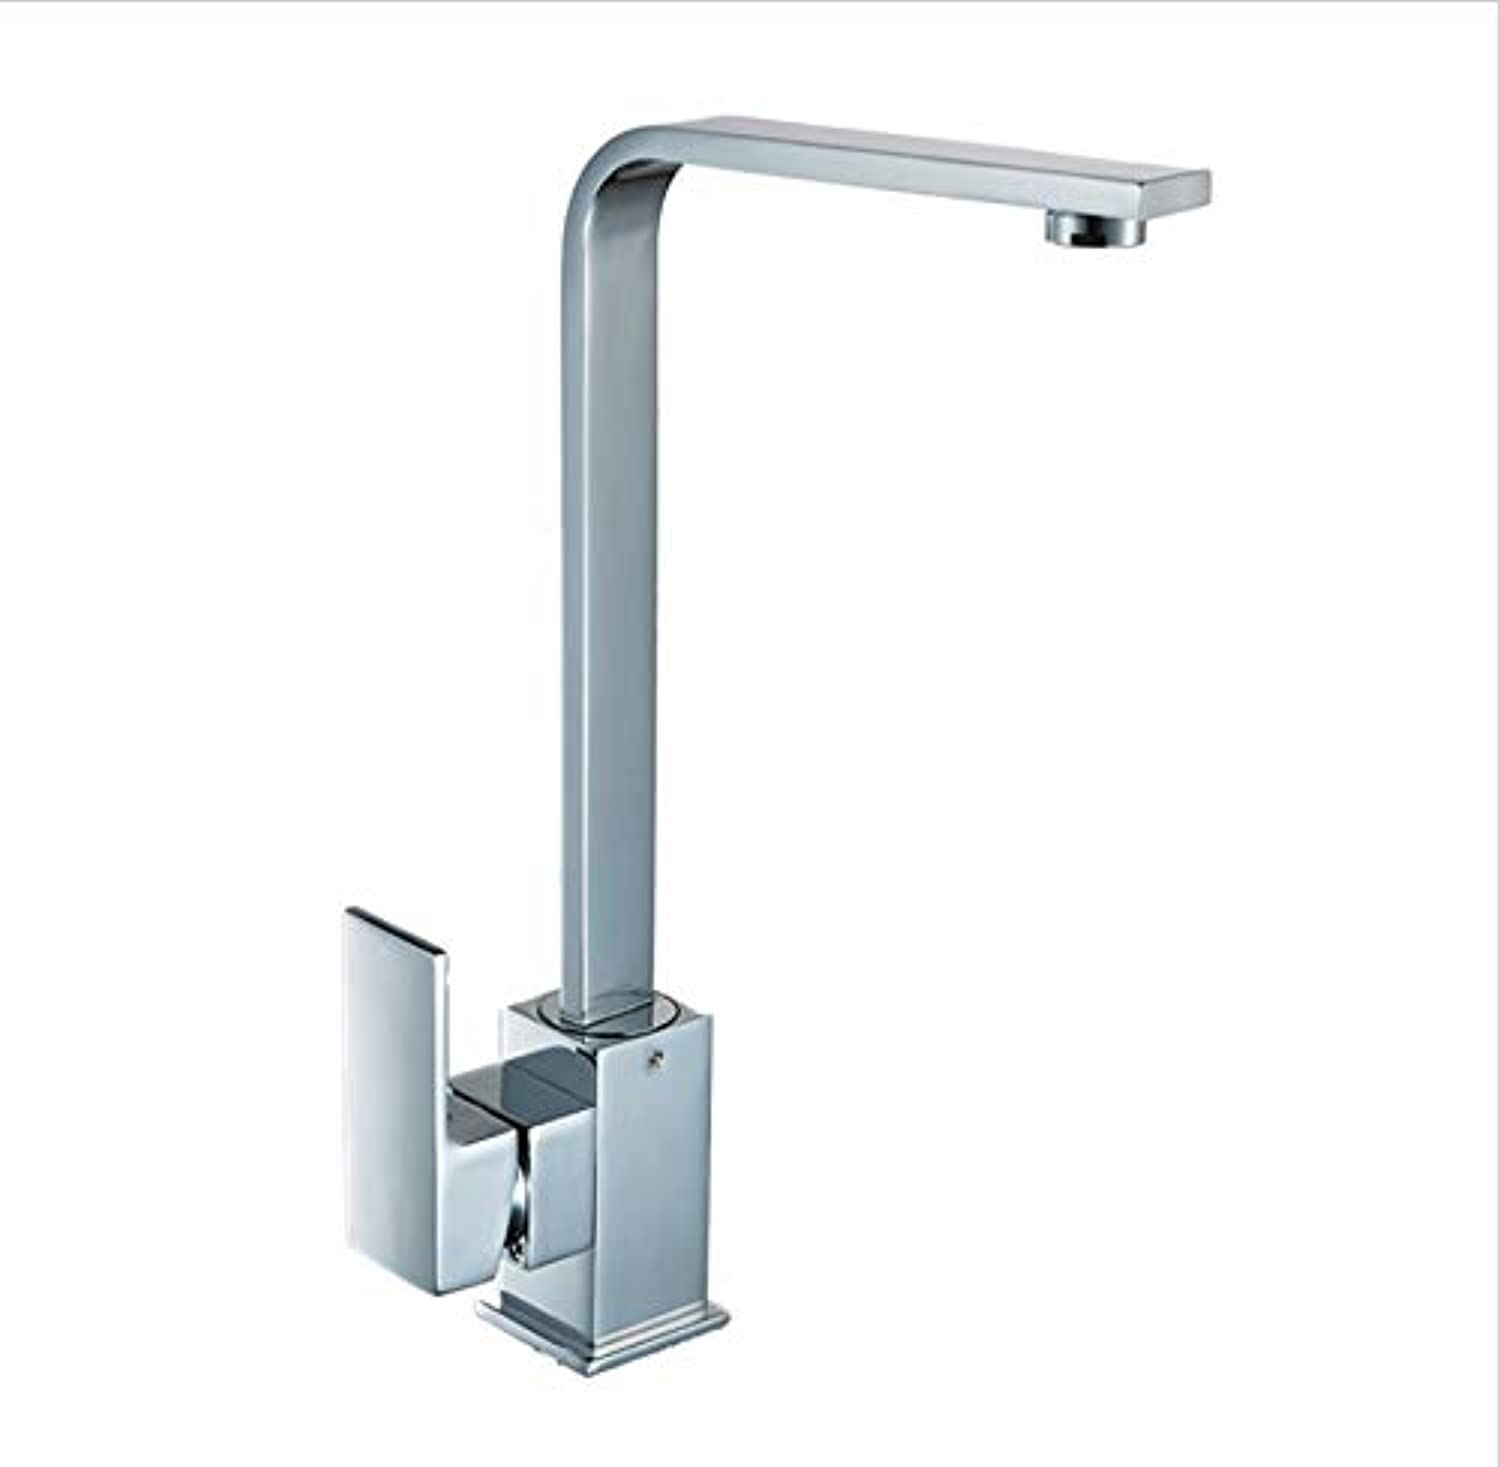 ROKTONG Faucet Quartet Hot And Cold Water Mixing Kitchen Faucet 360 ° redatable Sink Sink Faucet